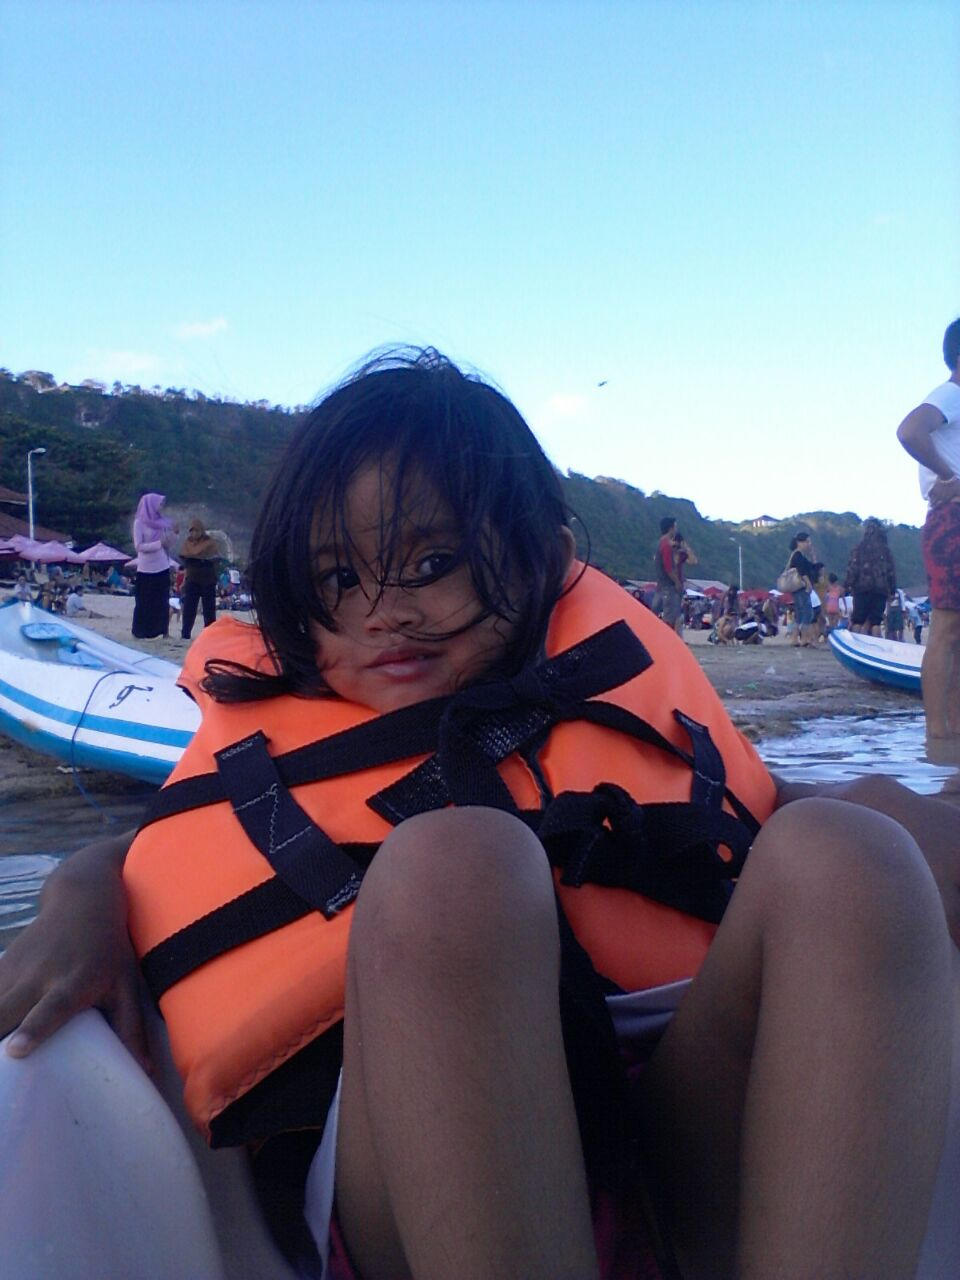 As I write, Rusnati's grandaughter, Key, isin Bali on holiday with her folks!